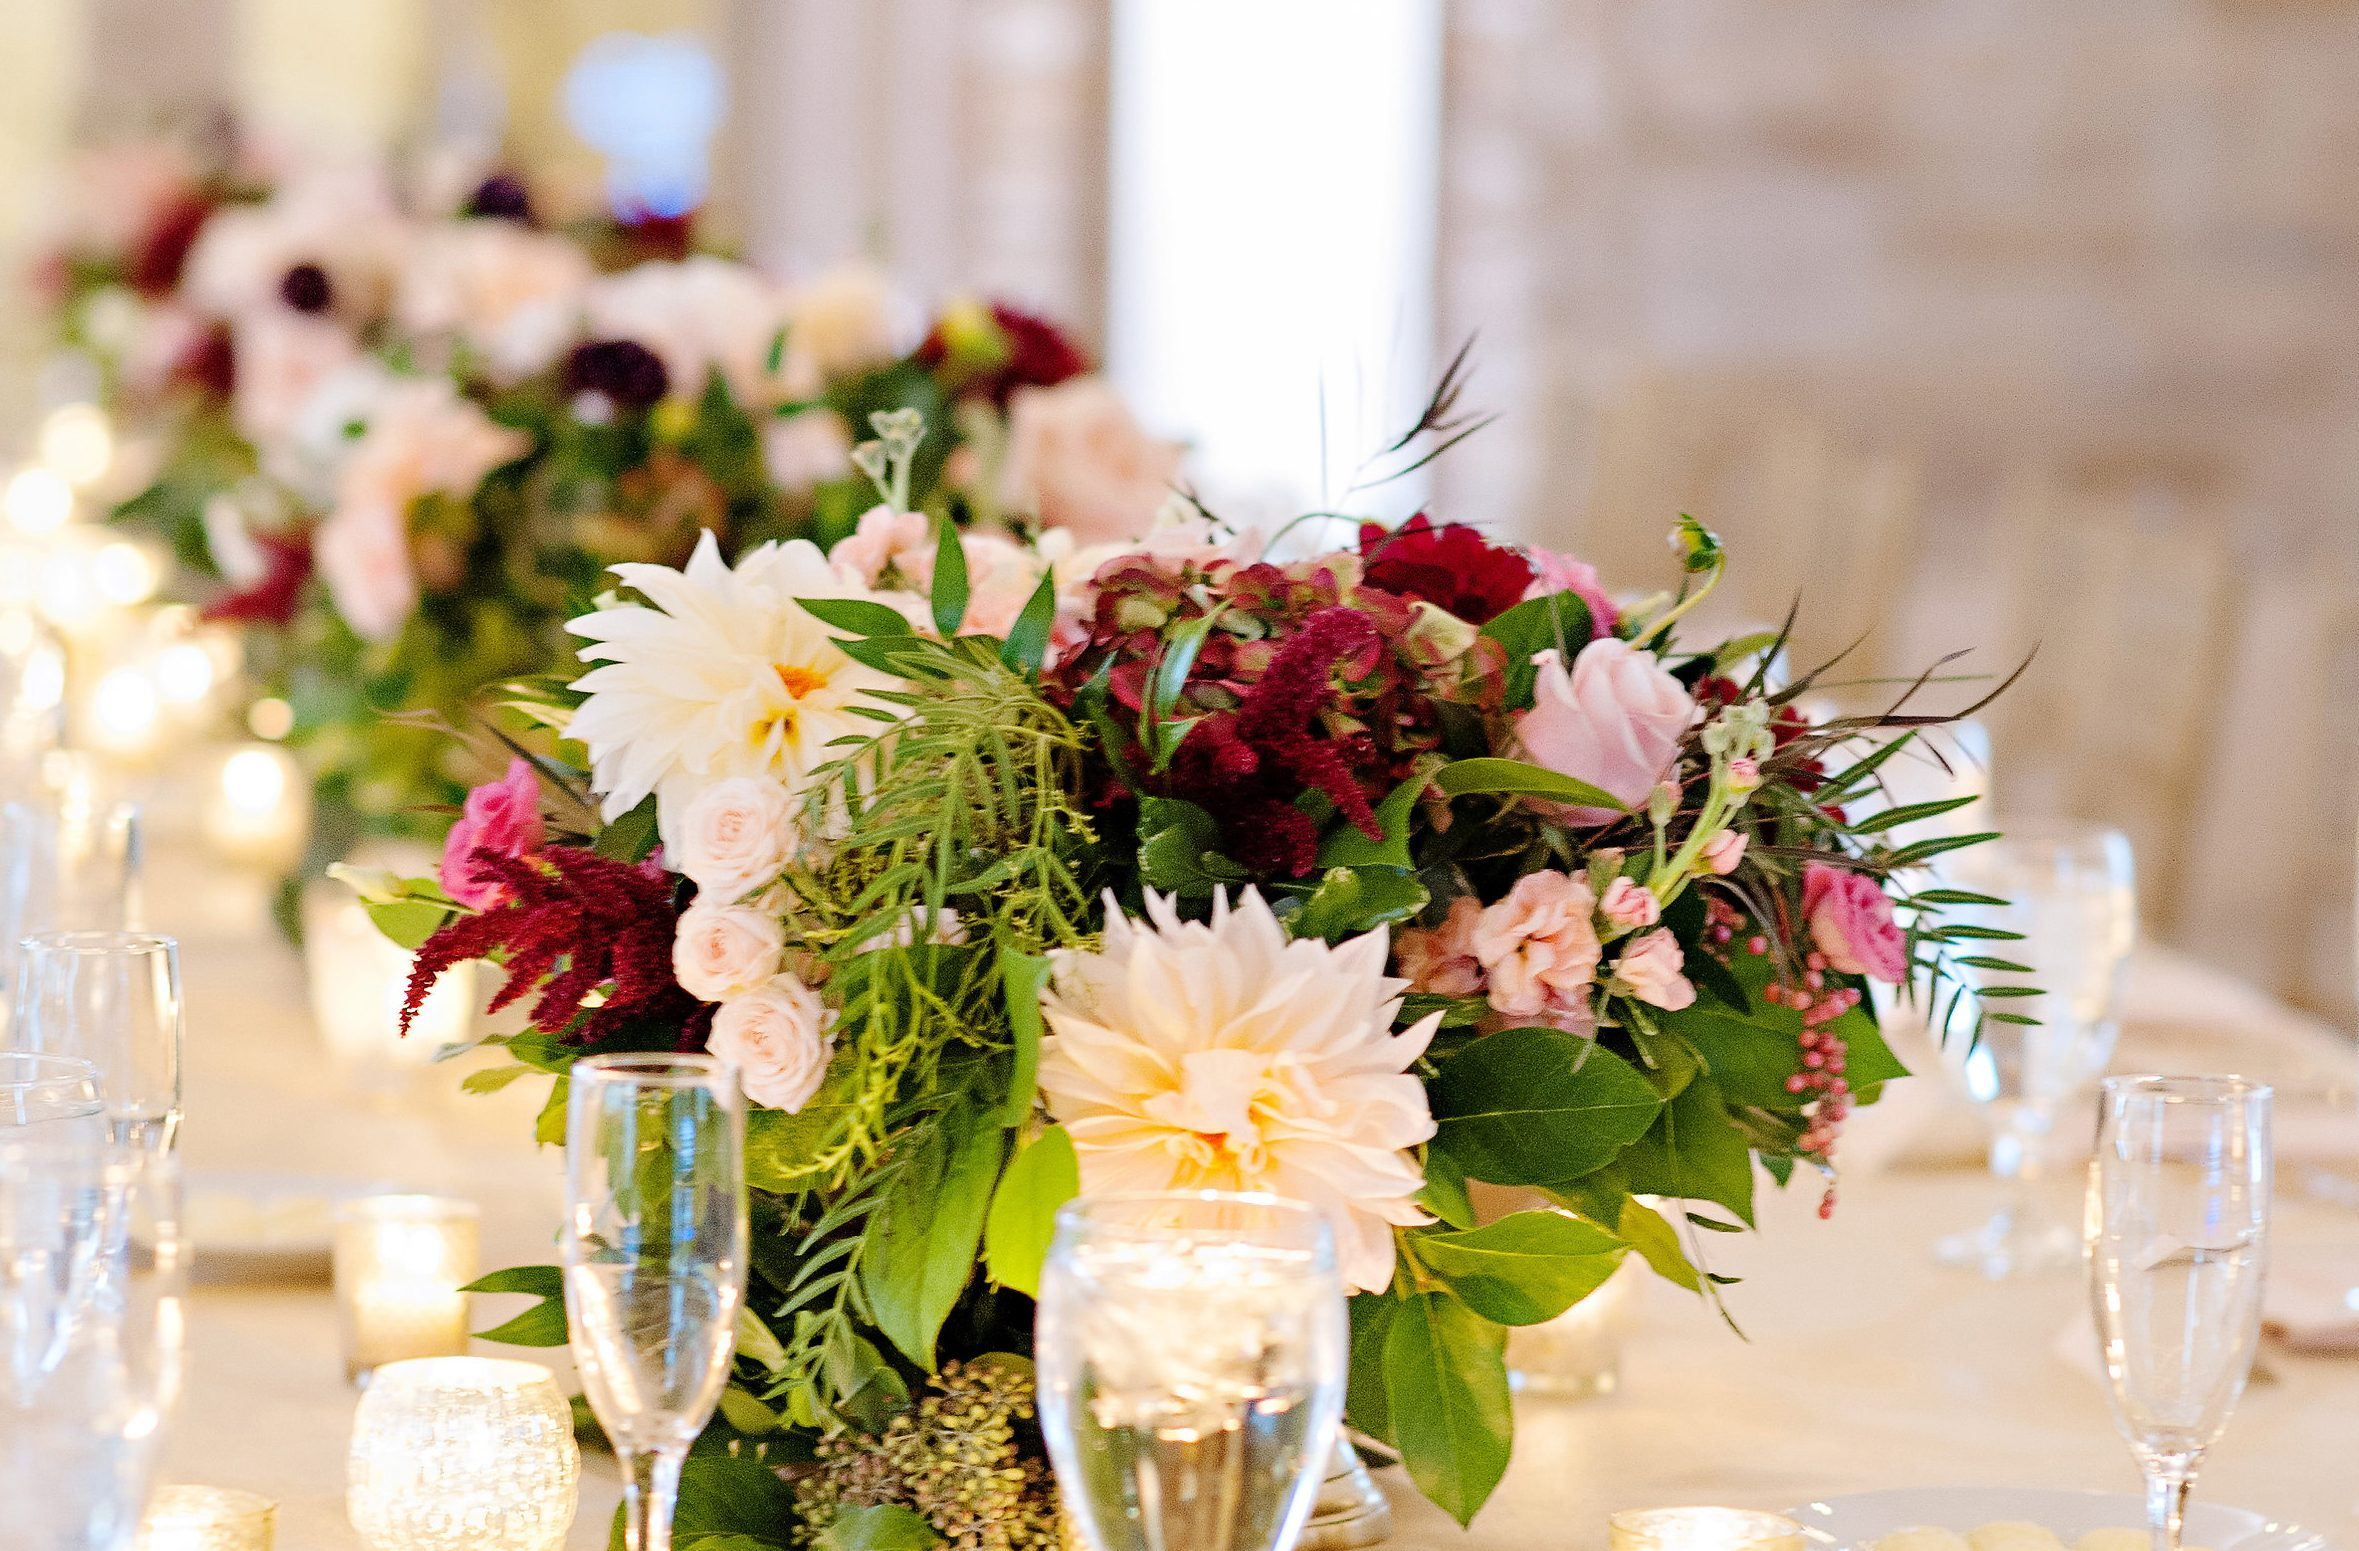 Outdoor wedding table decor of fall flower centerpieces and long garlands. Autumn pastel dahlias with crimson red and burgundy accents, draping berries and foliage, in low pedestal fresh flower arrangements.